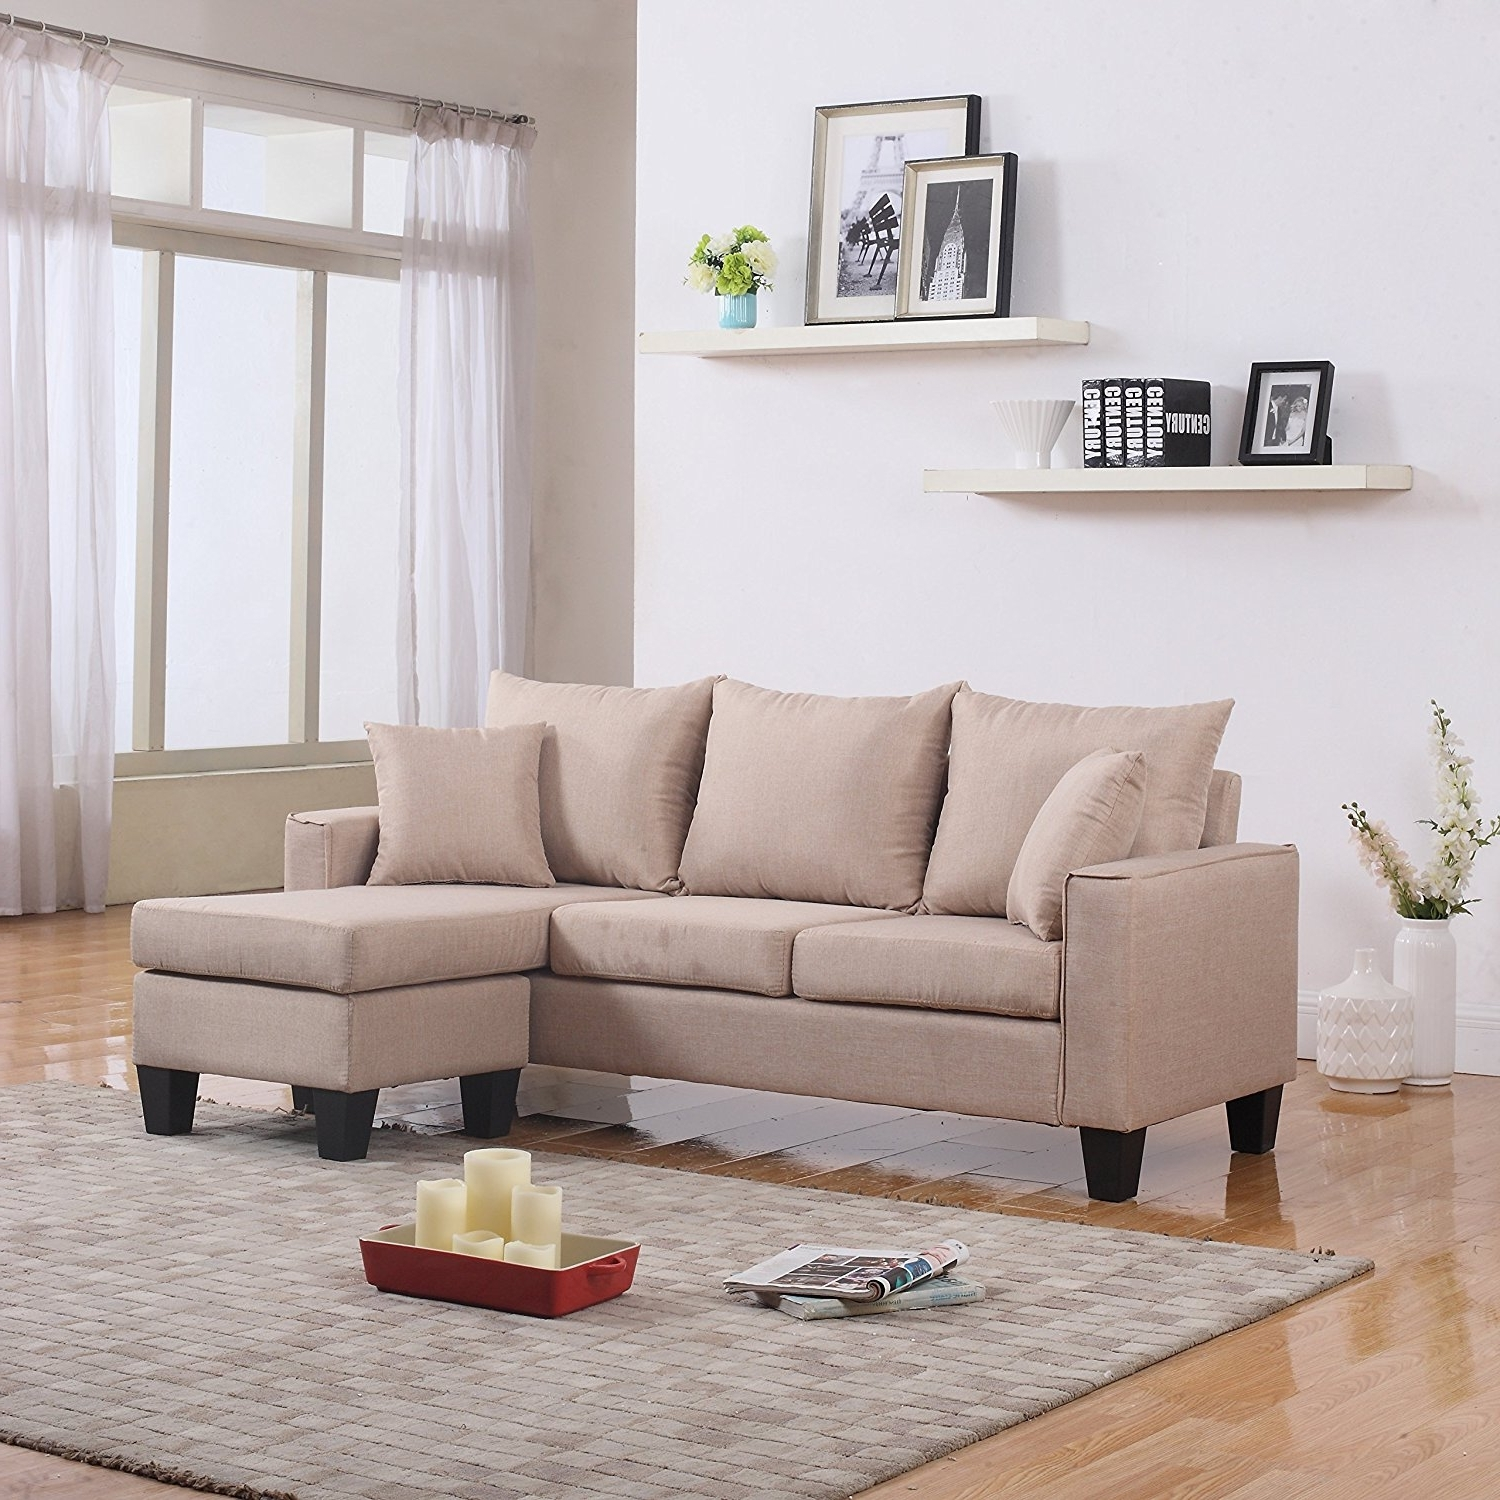 Most Up To Date Inexpensive Sectional Sofas For Small Spaces Regarding Ethan Allen Furniture Small Sectional Sofas For Small Spaces (View 12 of 15)